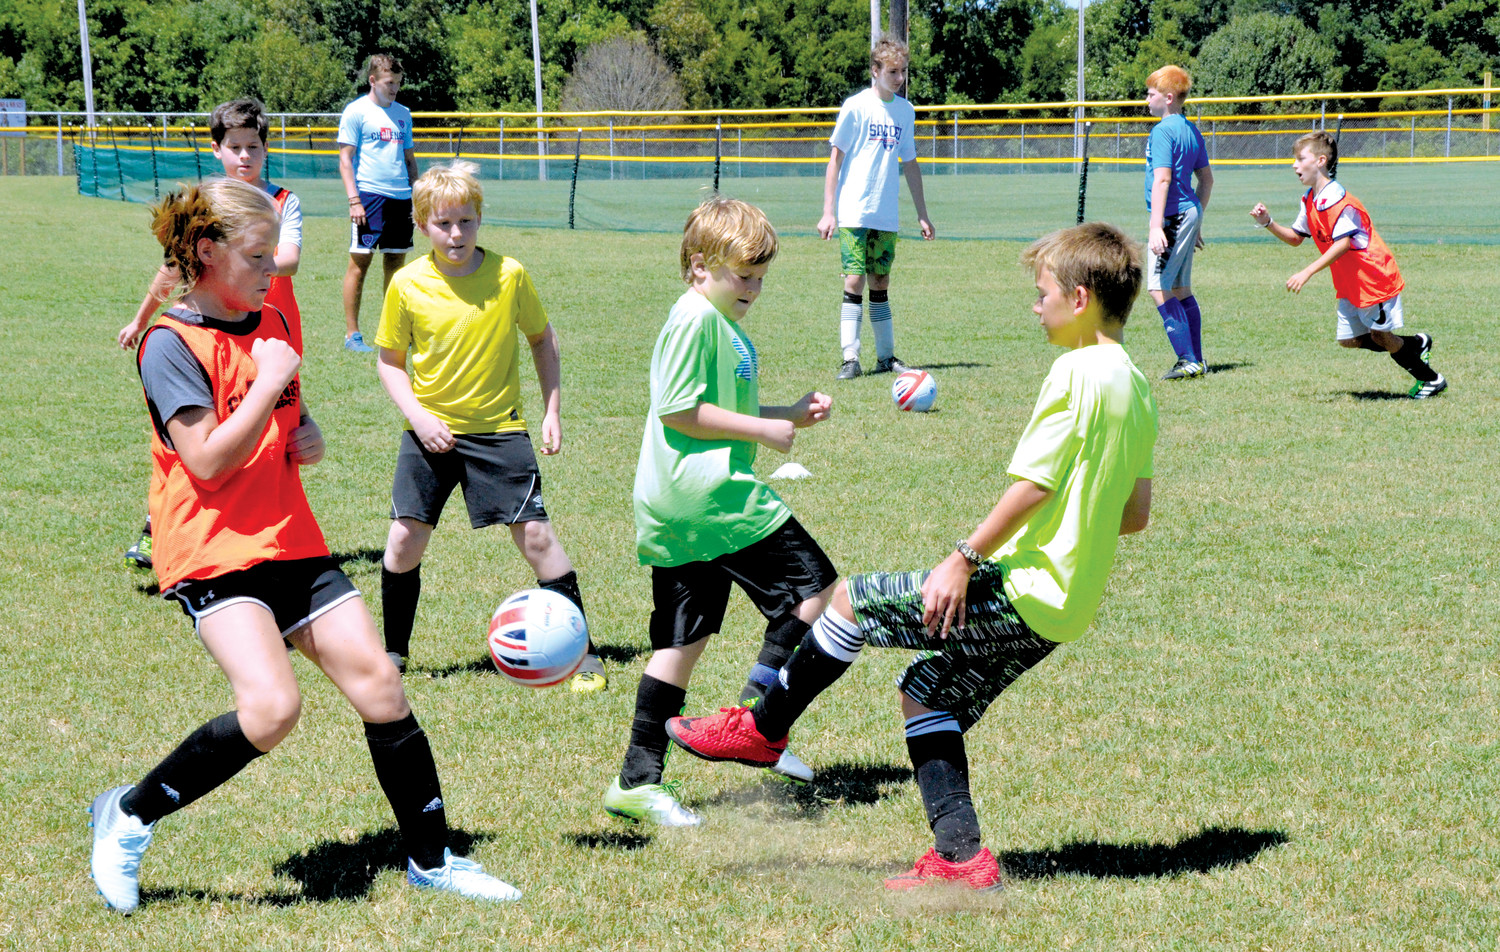 Cameron Denning, left, attempts to block a clearing pass from goalkeeper Braston Autry, right. Nicholas Jackson defends in the background, while Braeden Kesler and Connor Parker work to get open on offense. This drill was a part of a 3-on-3 'World Cup' game simulation at the Challenger Sports British Soccer Camp that began yesterday morning.